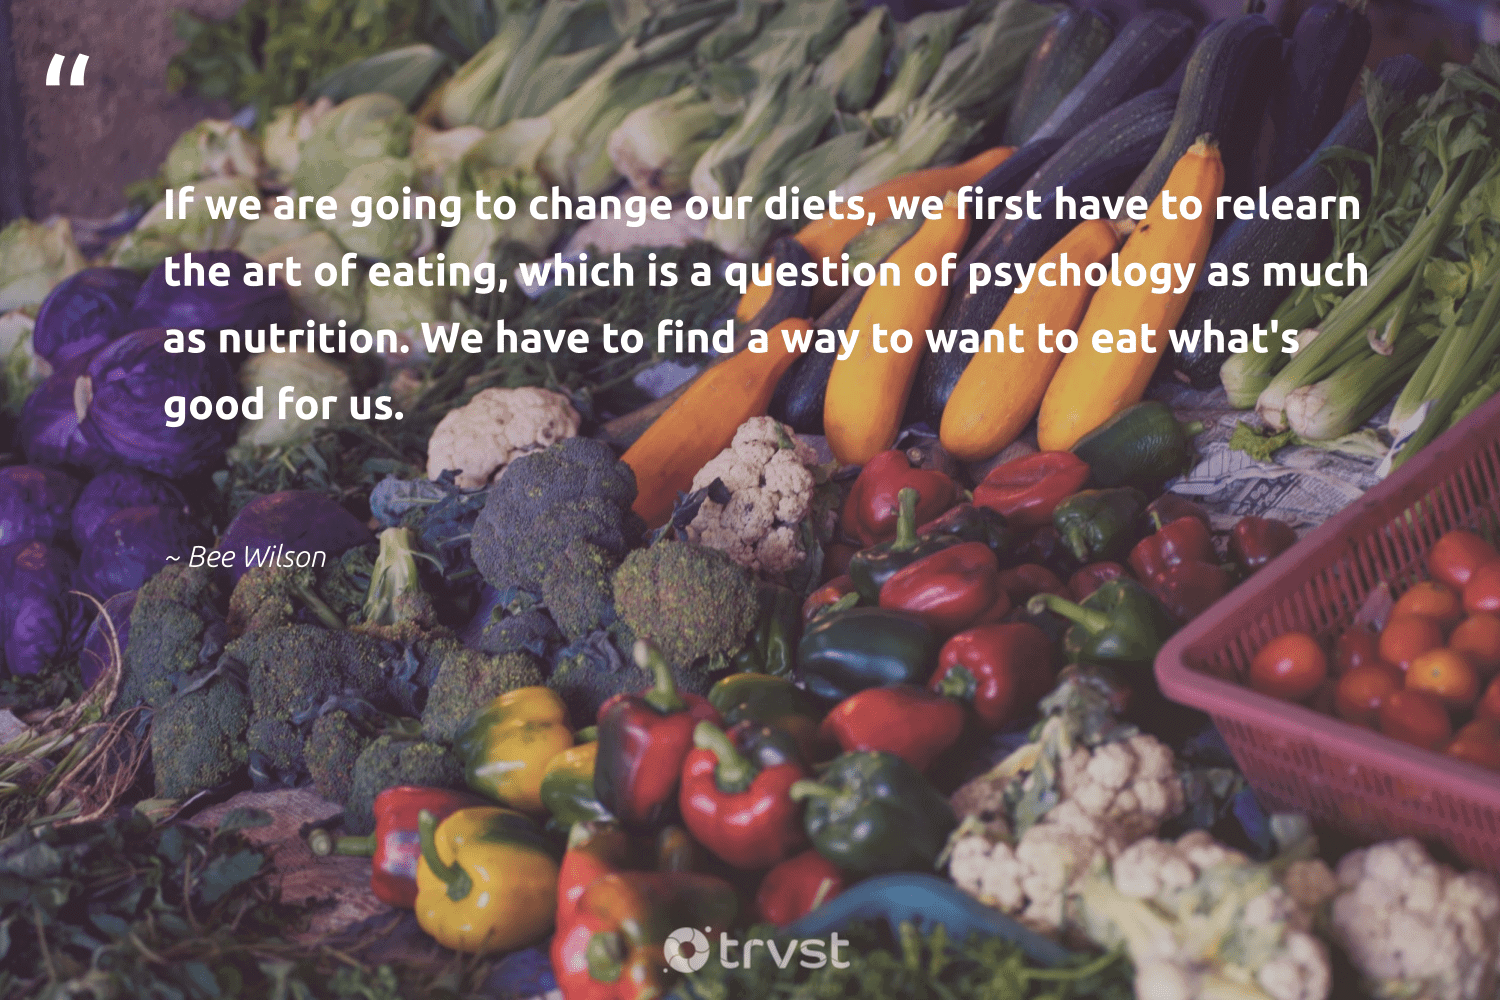 """""""If we are going to change our diets, we first have to relearn the art of eating, which is a question of psychology as much as nutrition. We have to find a way to want to eat what's good for us.""""  - Bee Wilson #trvst #quotes #eatclean #nutrition #changemakers #health #dotherightthing #healthylifestyle #togetherwecan #begreat #dosomething #healthyeating"""